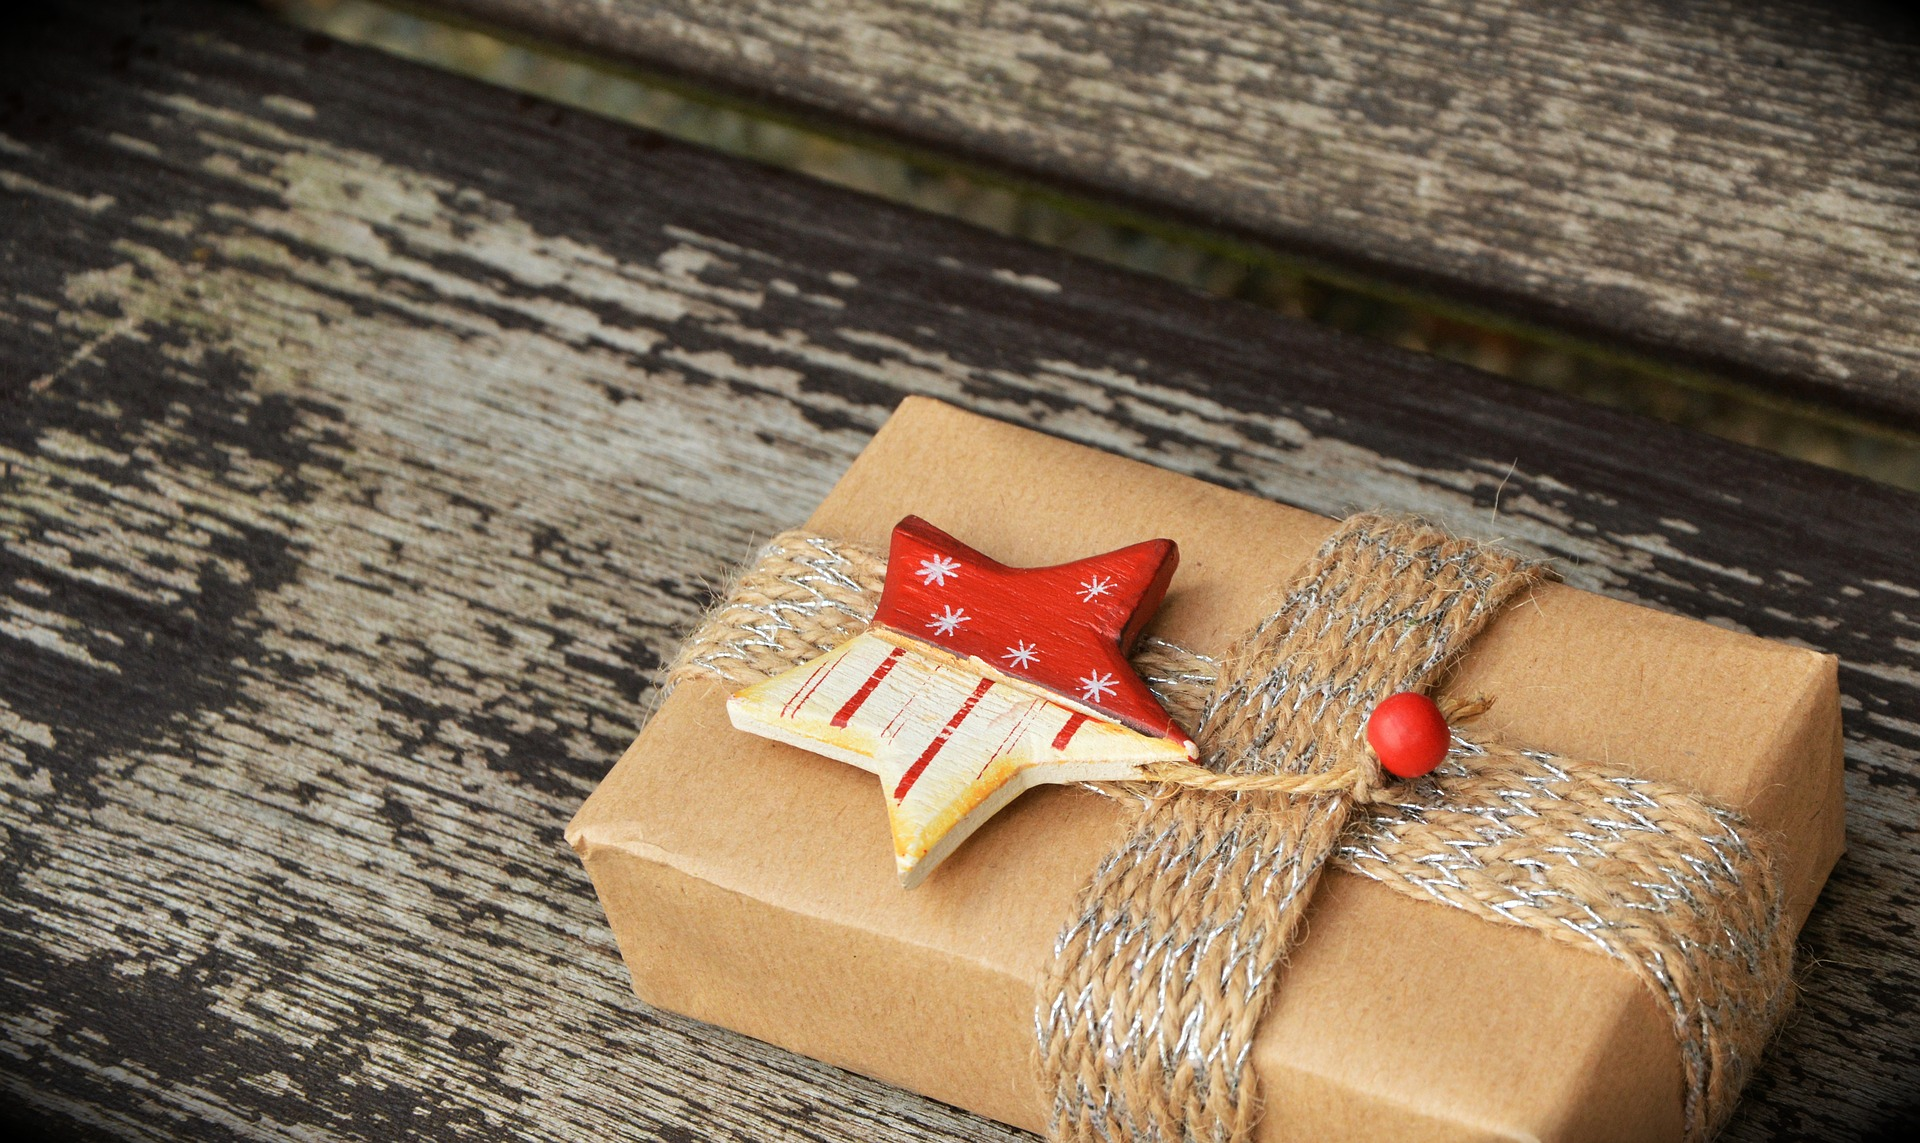 Image of package on porch, wrapped as gift